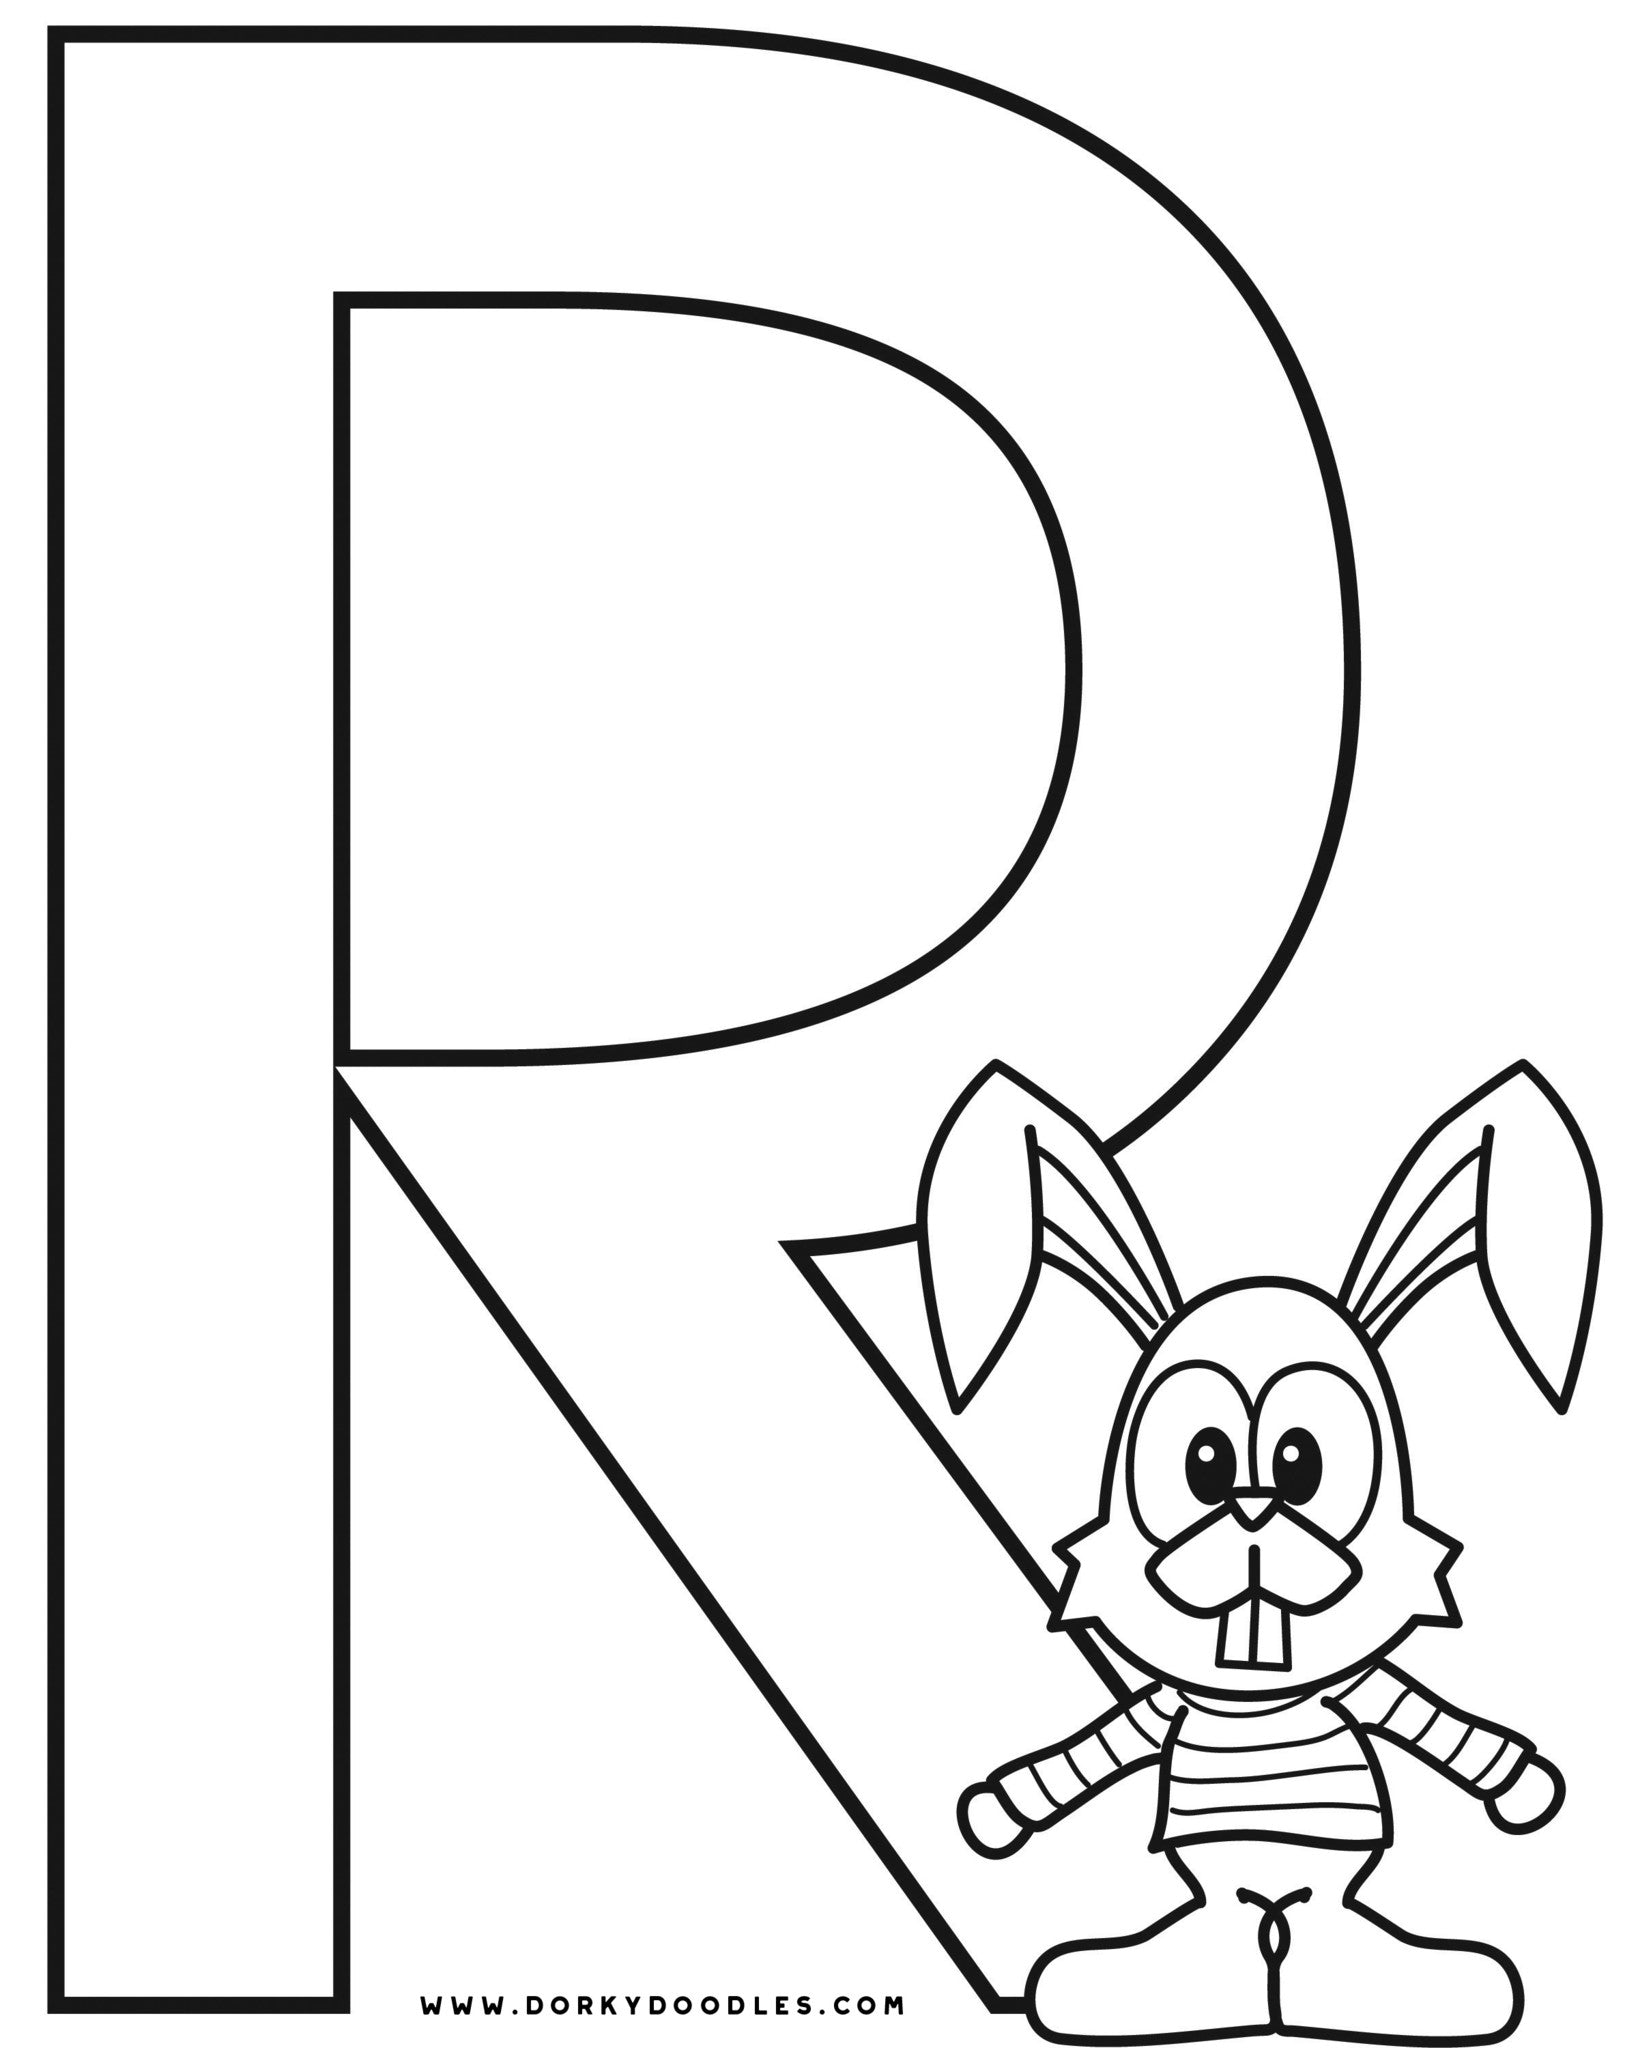 Letter R Coloring Page and Writing Practice Worksheet